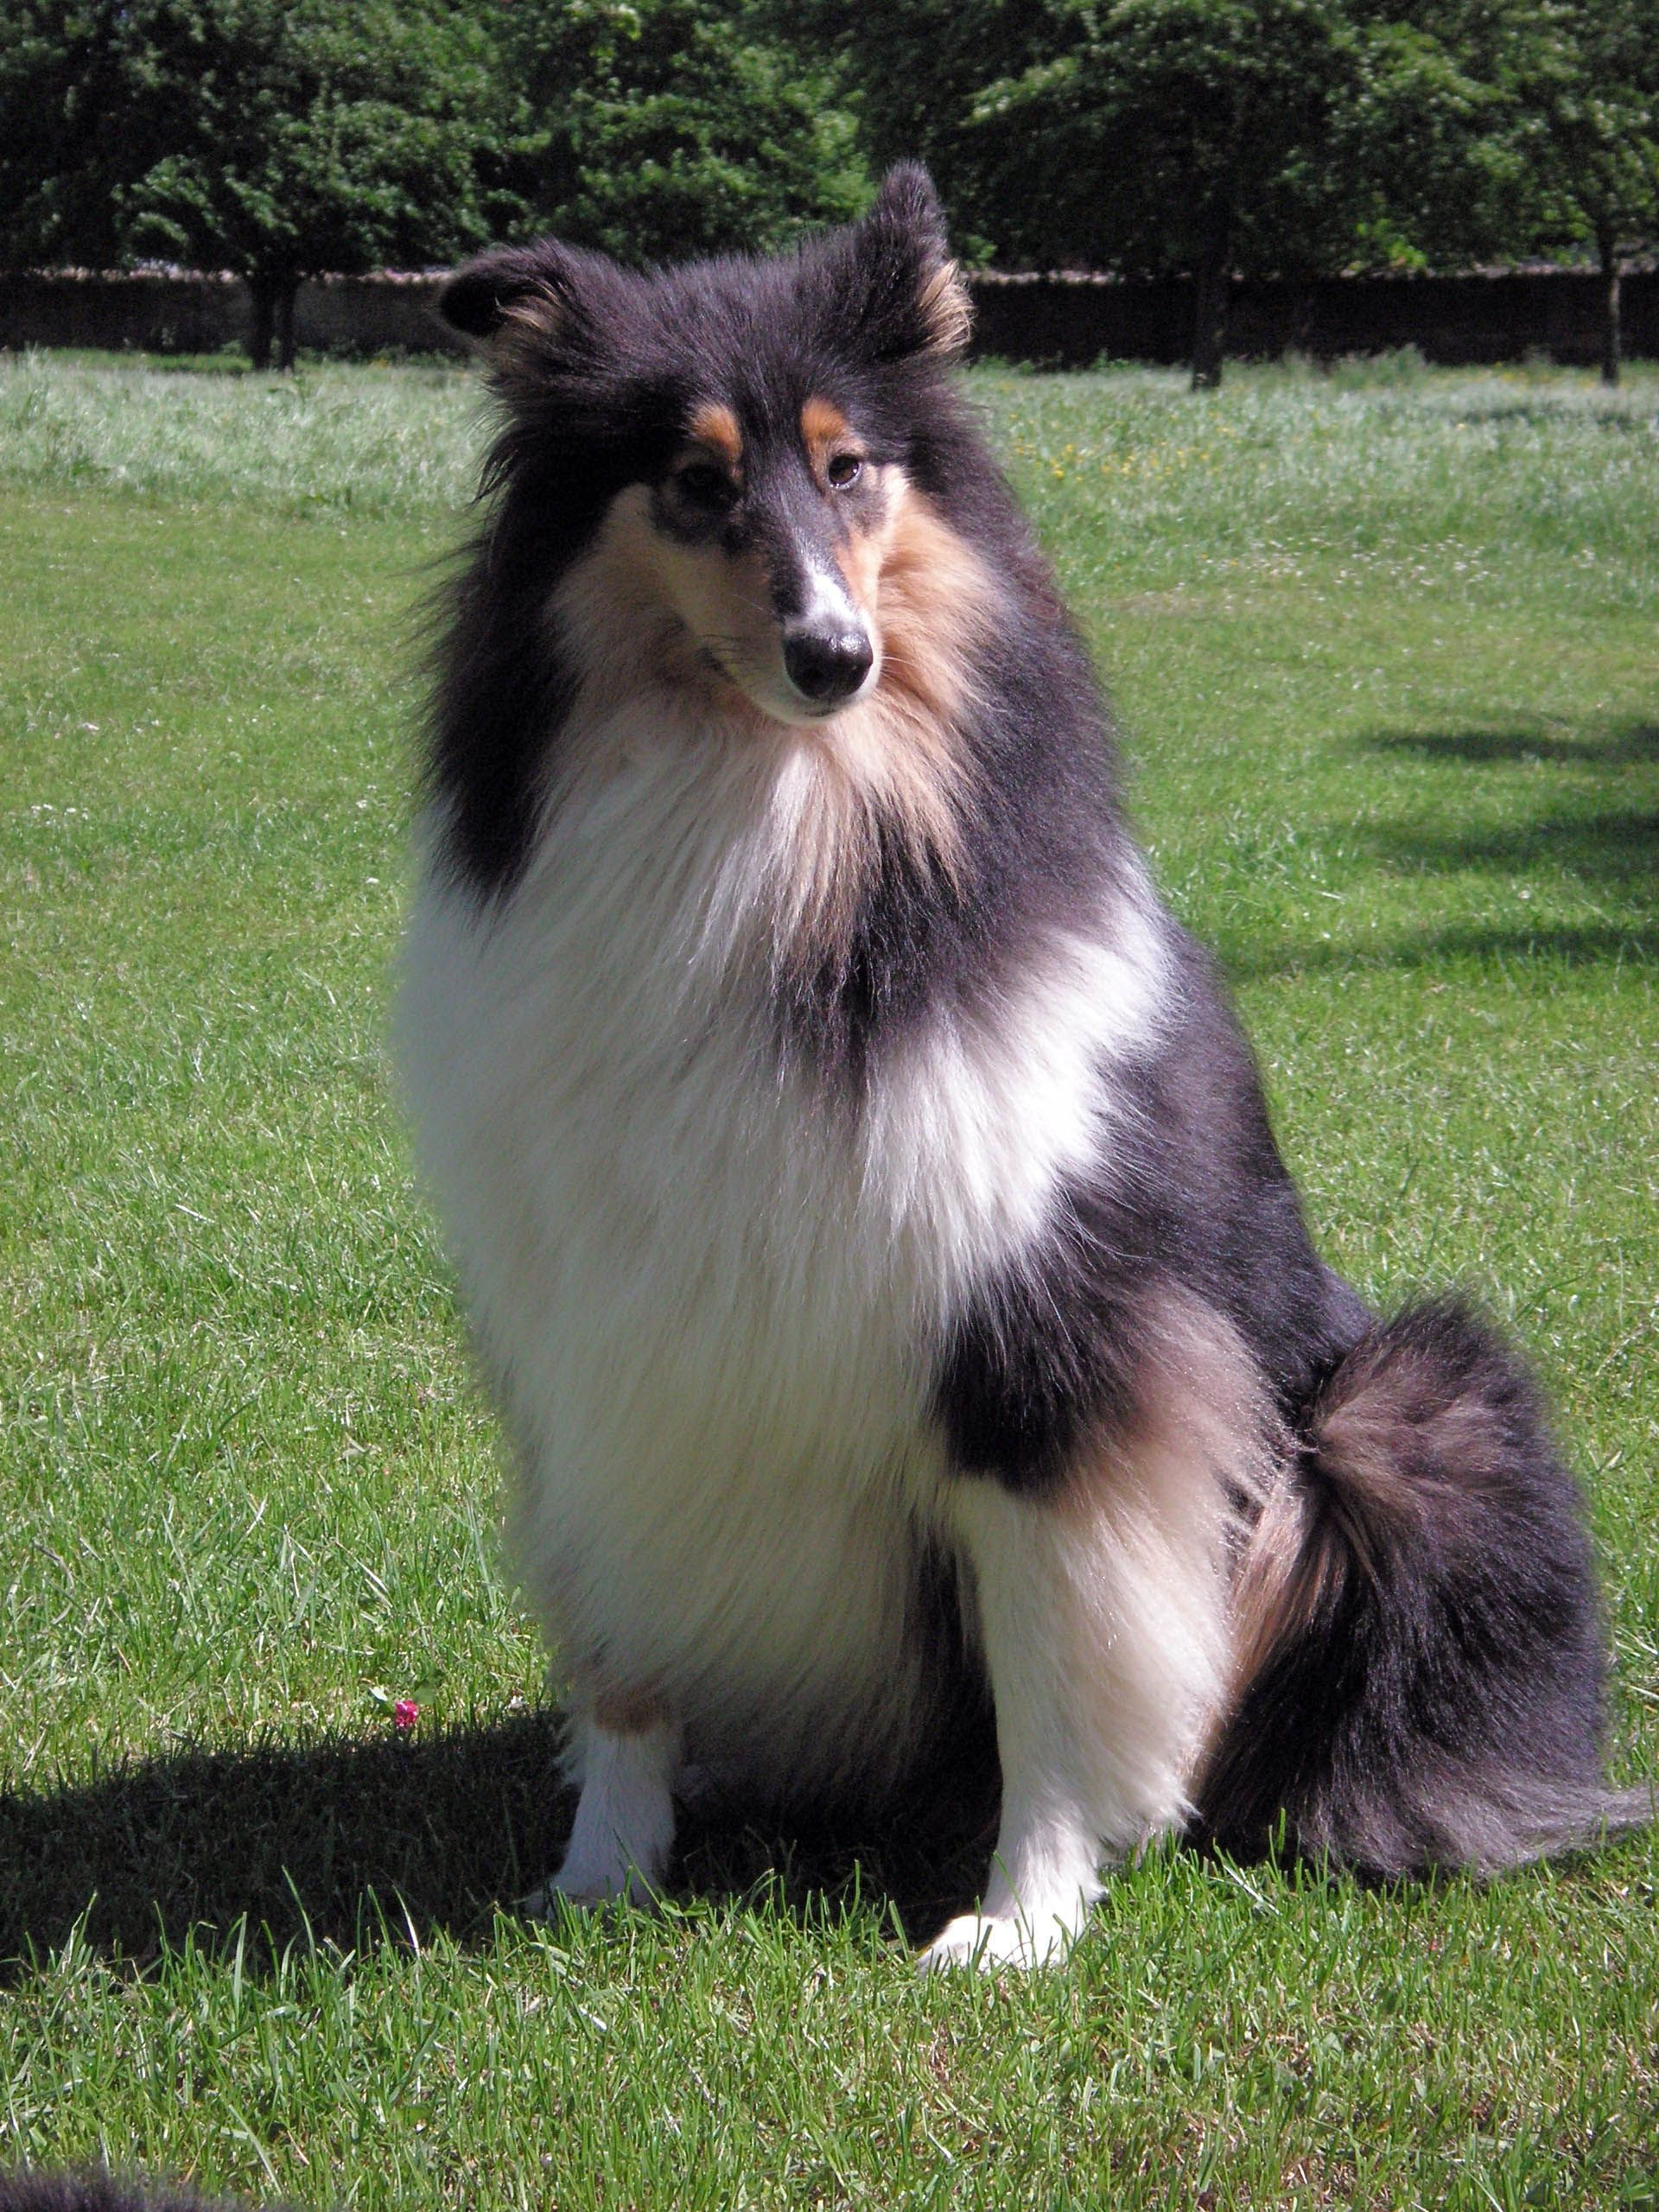 Three Coat Colors Are Recognized For Rough Collies Sable And